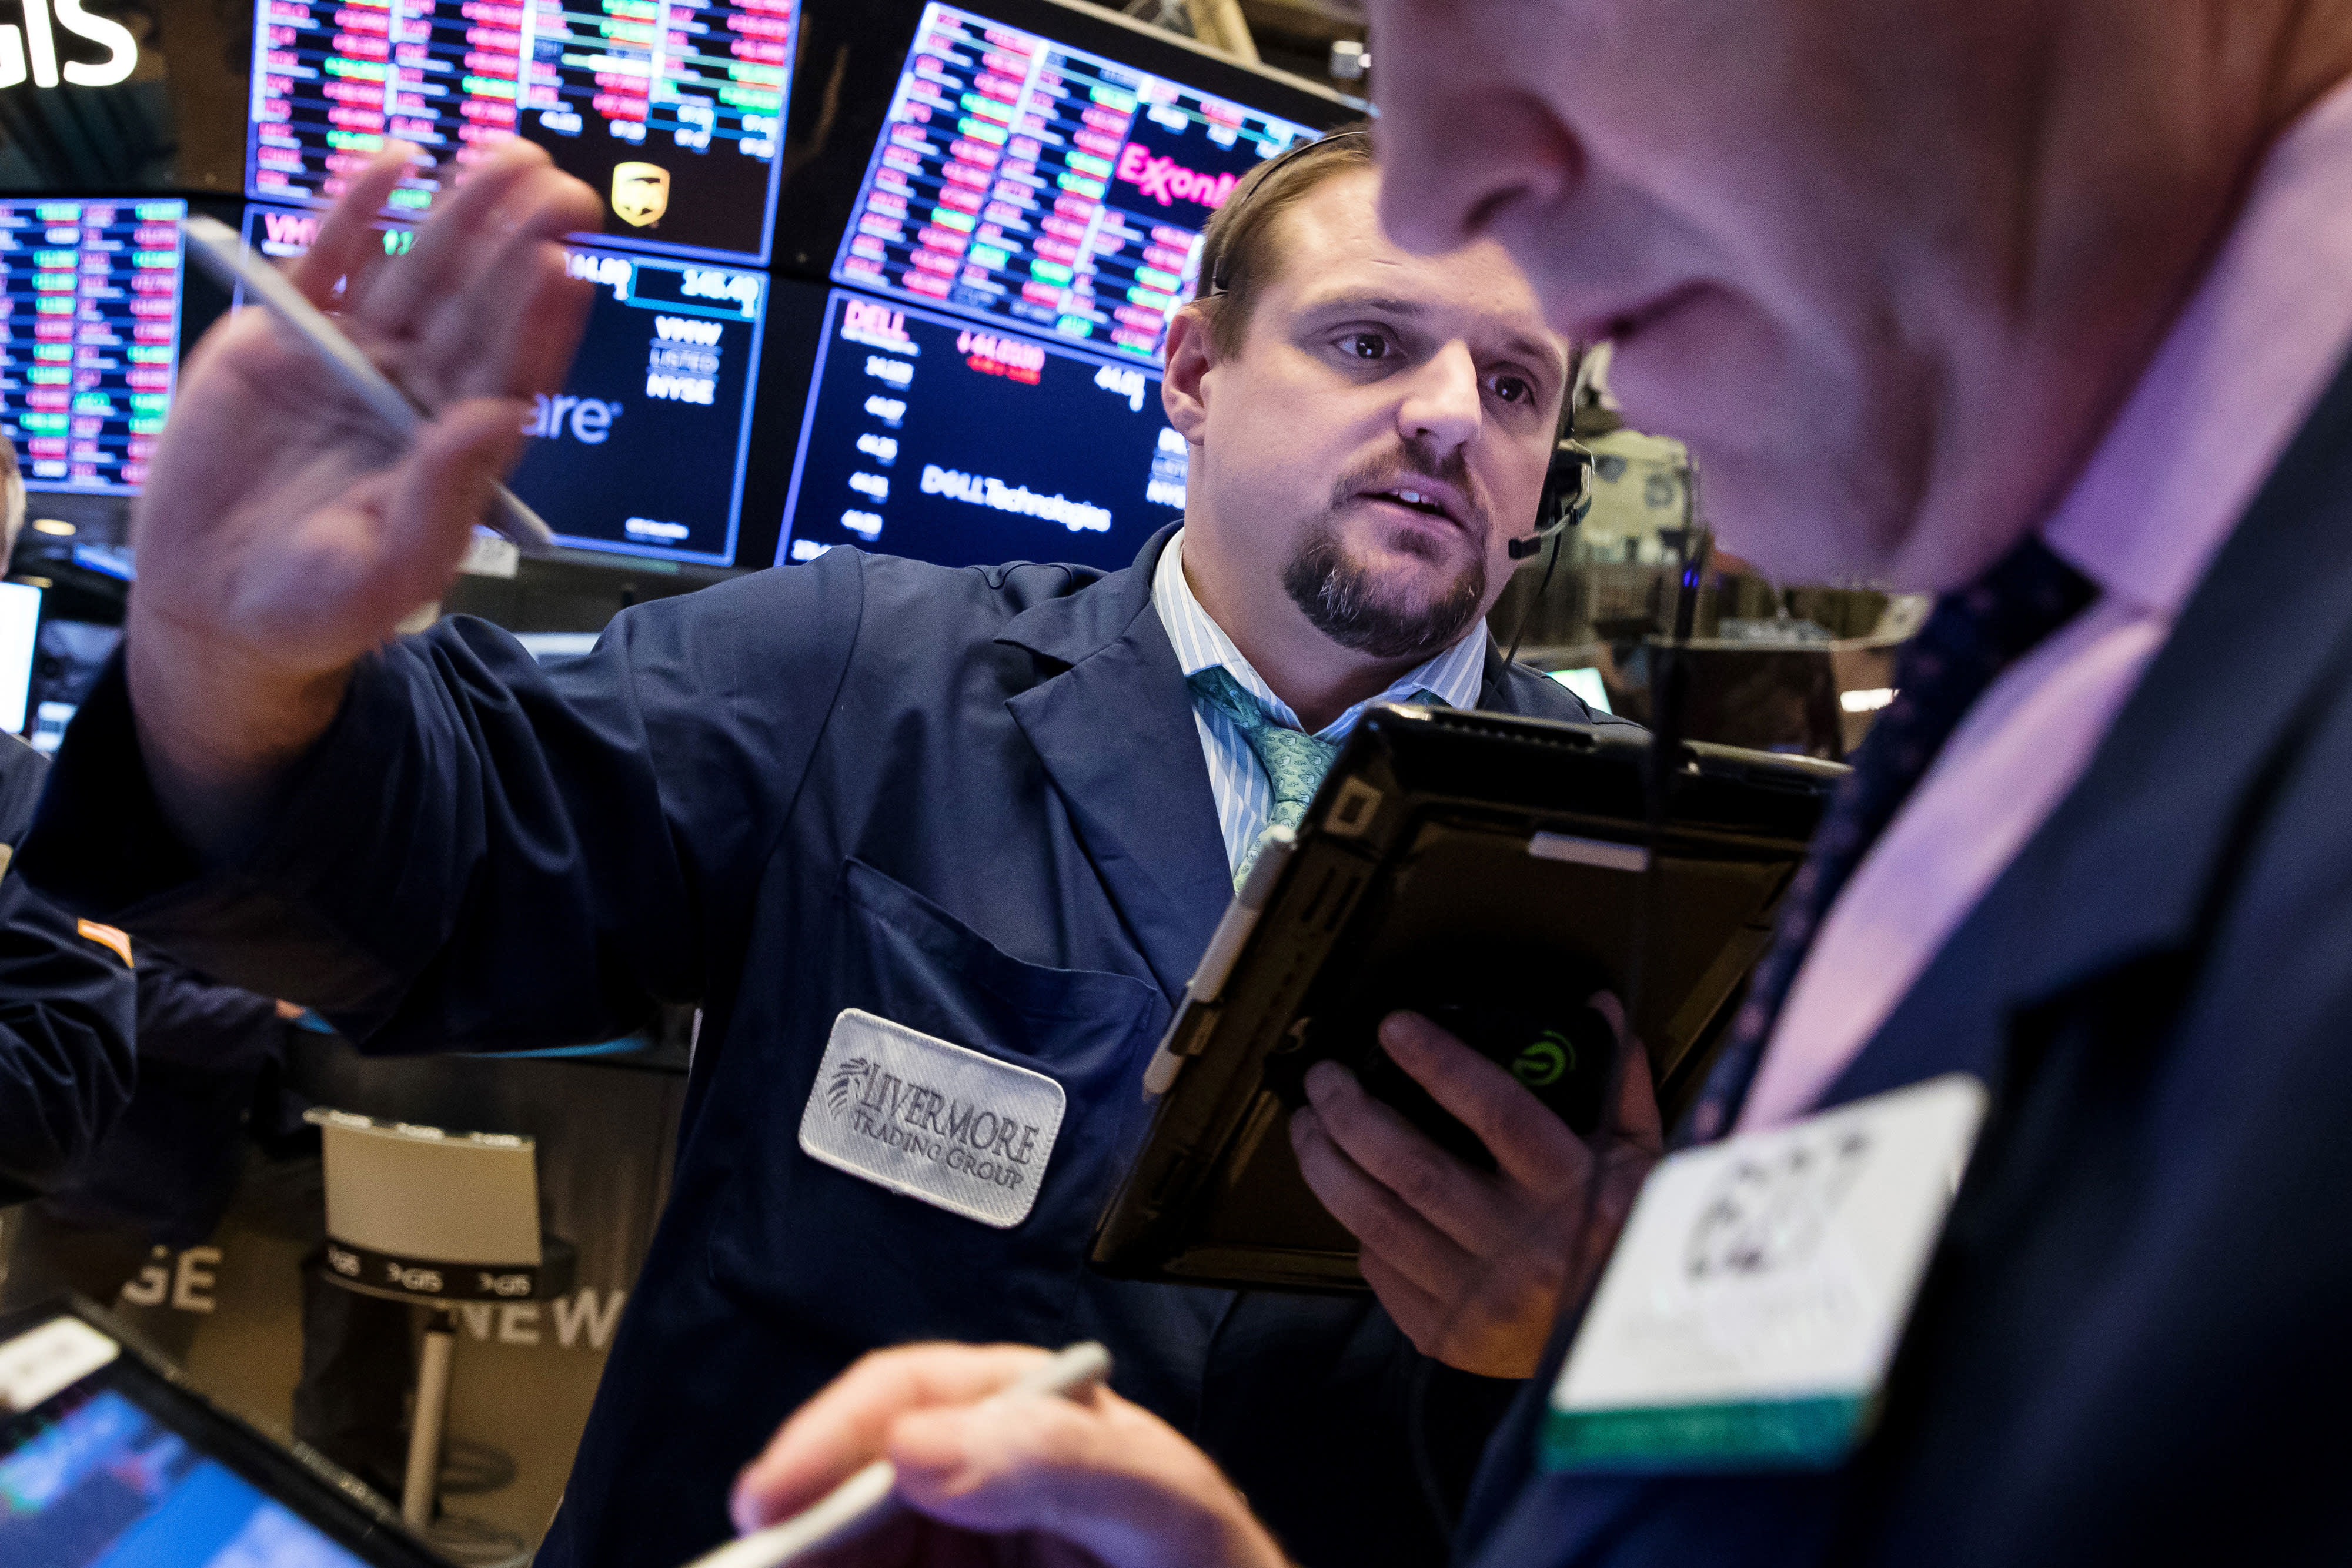 Seven comeback stocks that investors could pounce on: Cramer